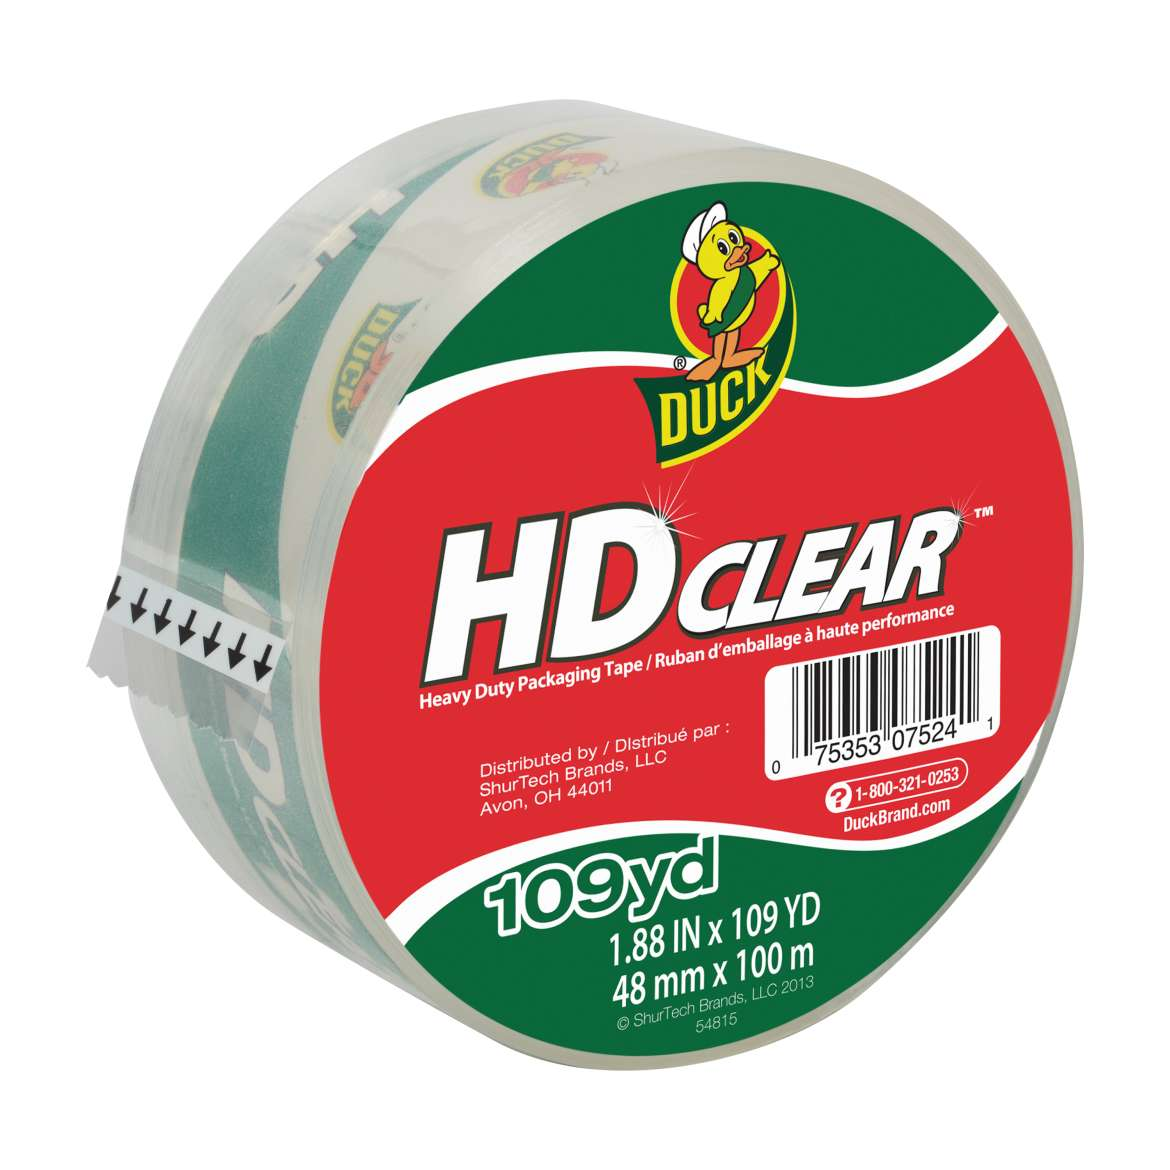 HD Clear™ Heavy Duty Packaging Tape